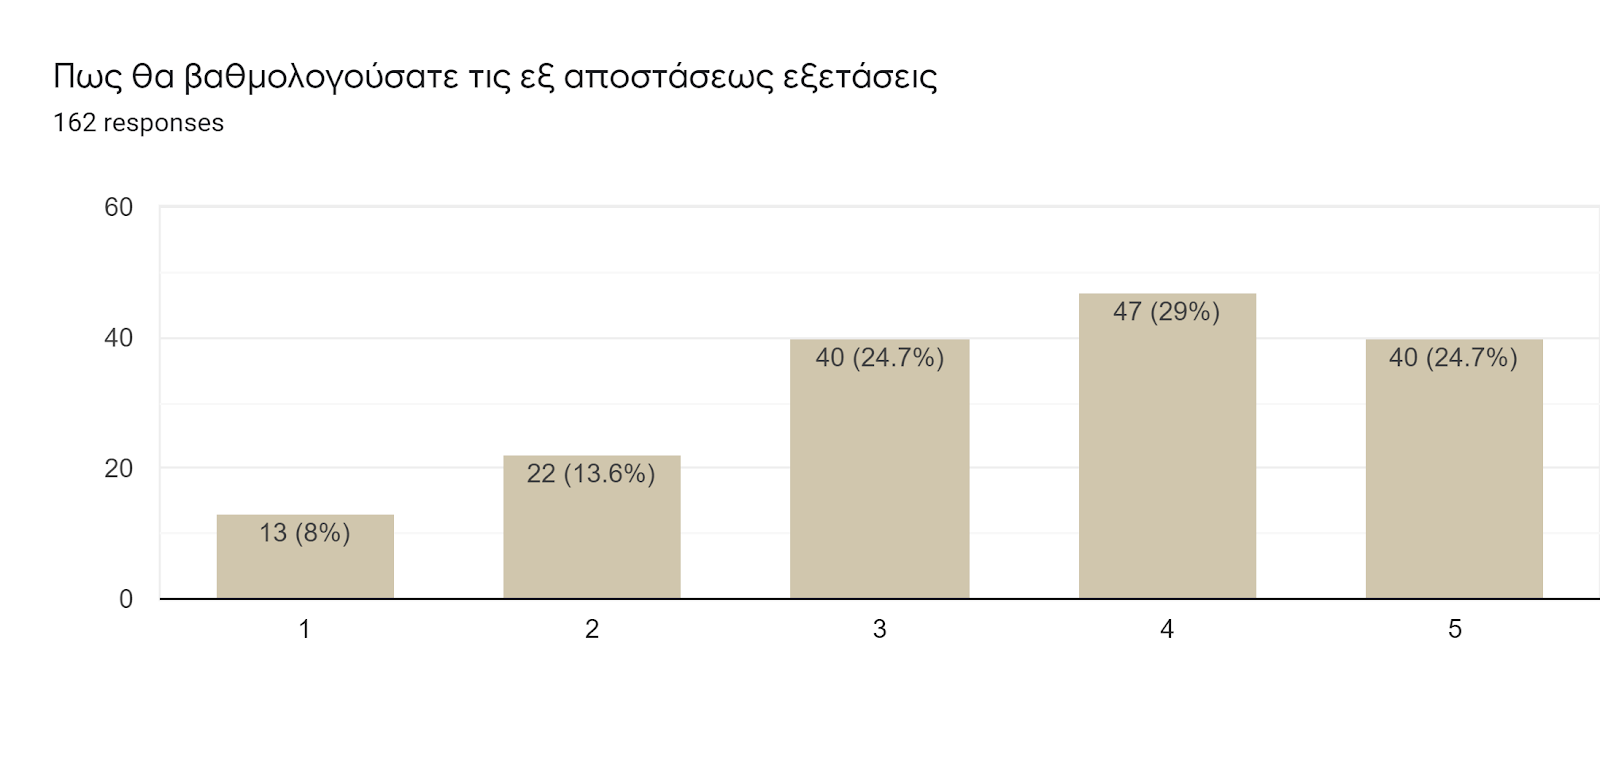 Forms response chart. Question title: Πως θα βαθμολογούσατε τις εξ αποστάσεως εξετάσεις. Number of responses: 162 responses.